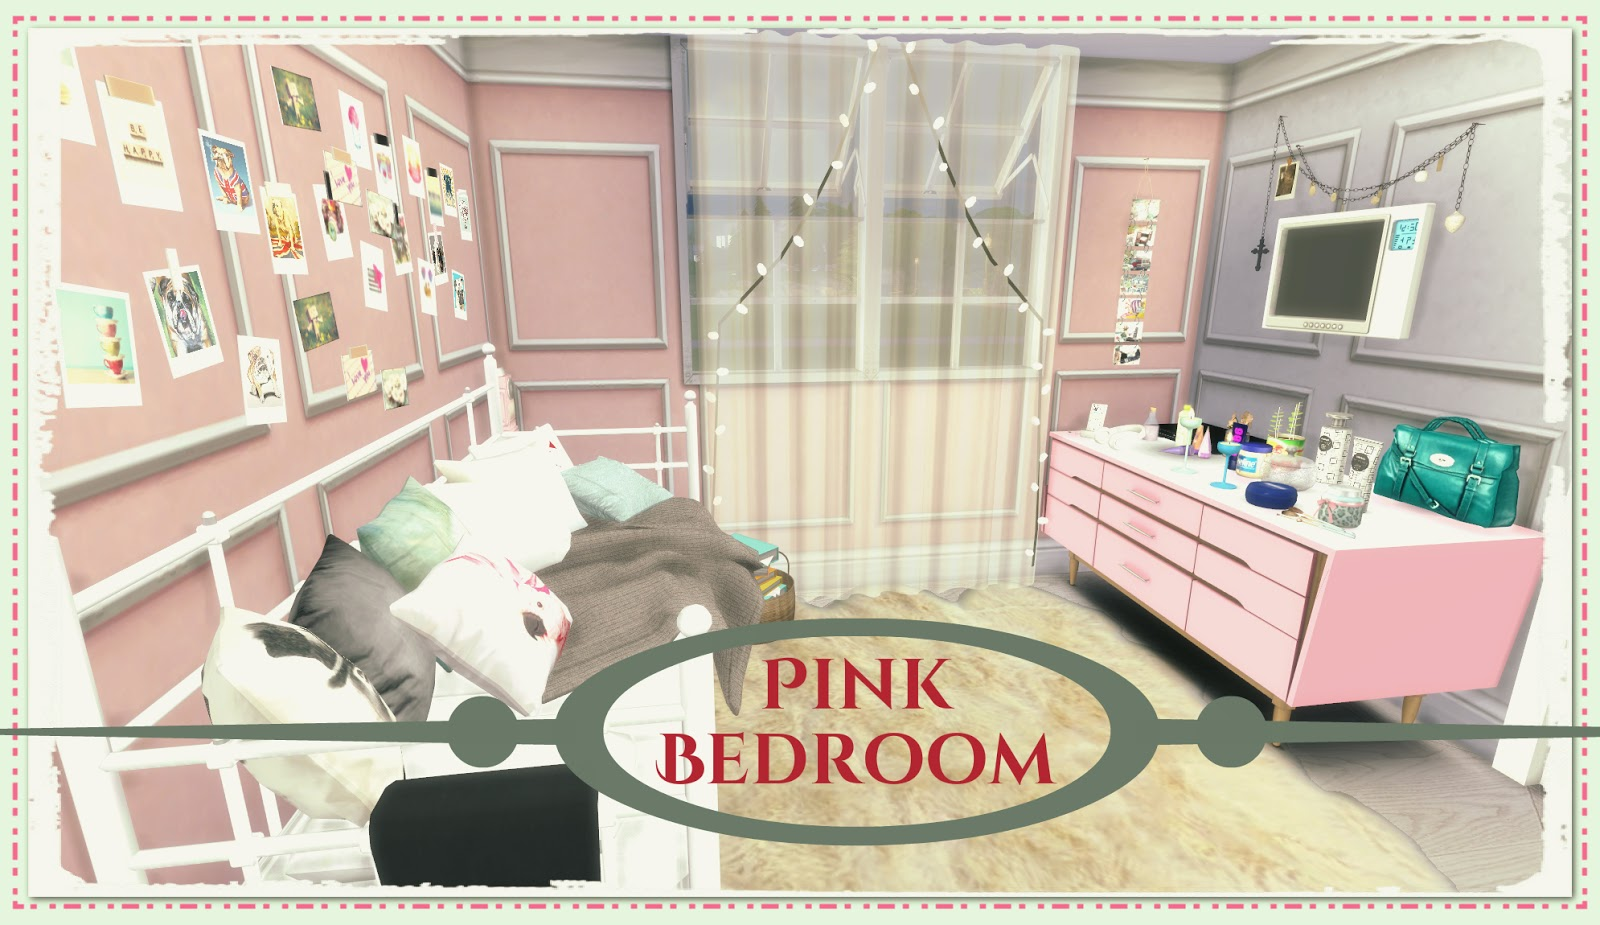 sims 4 pink bedroom dinha